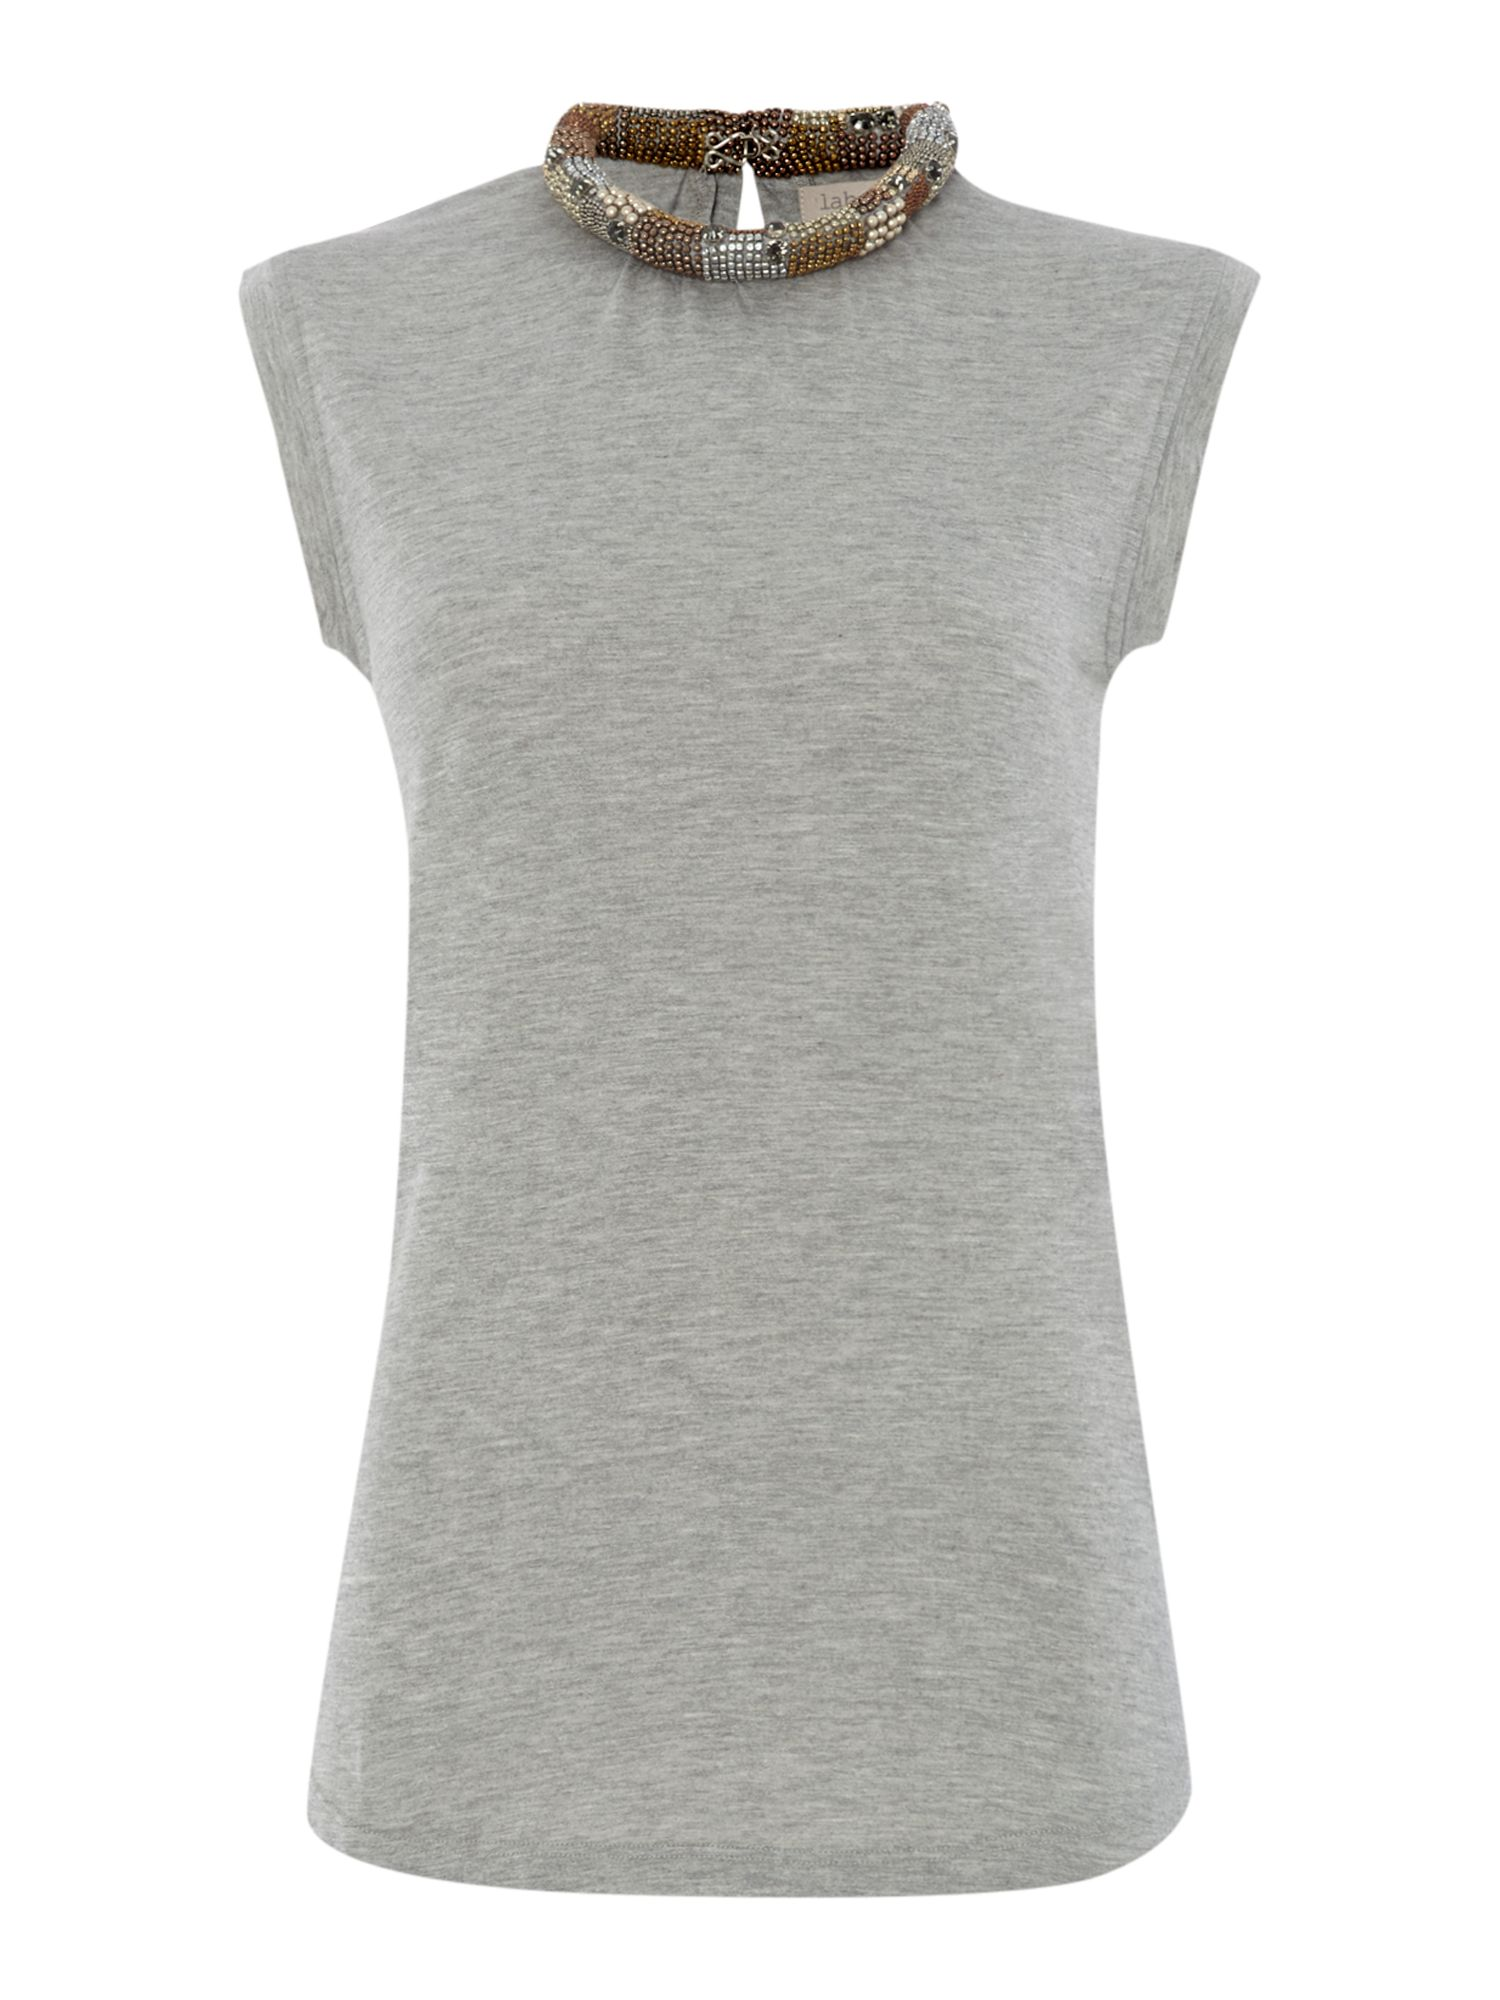 Embellished neckline sleeveless top